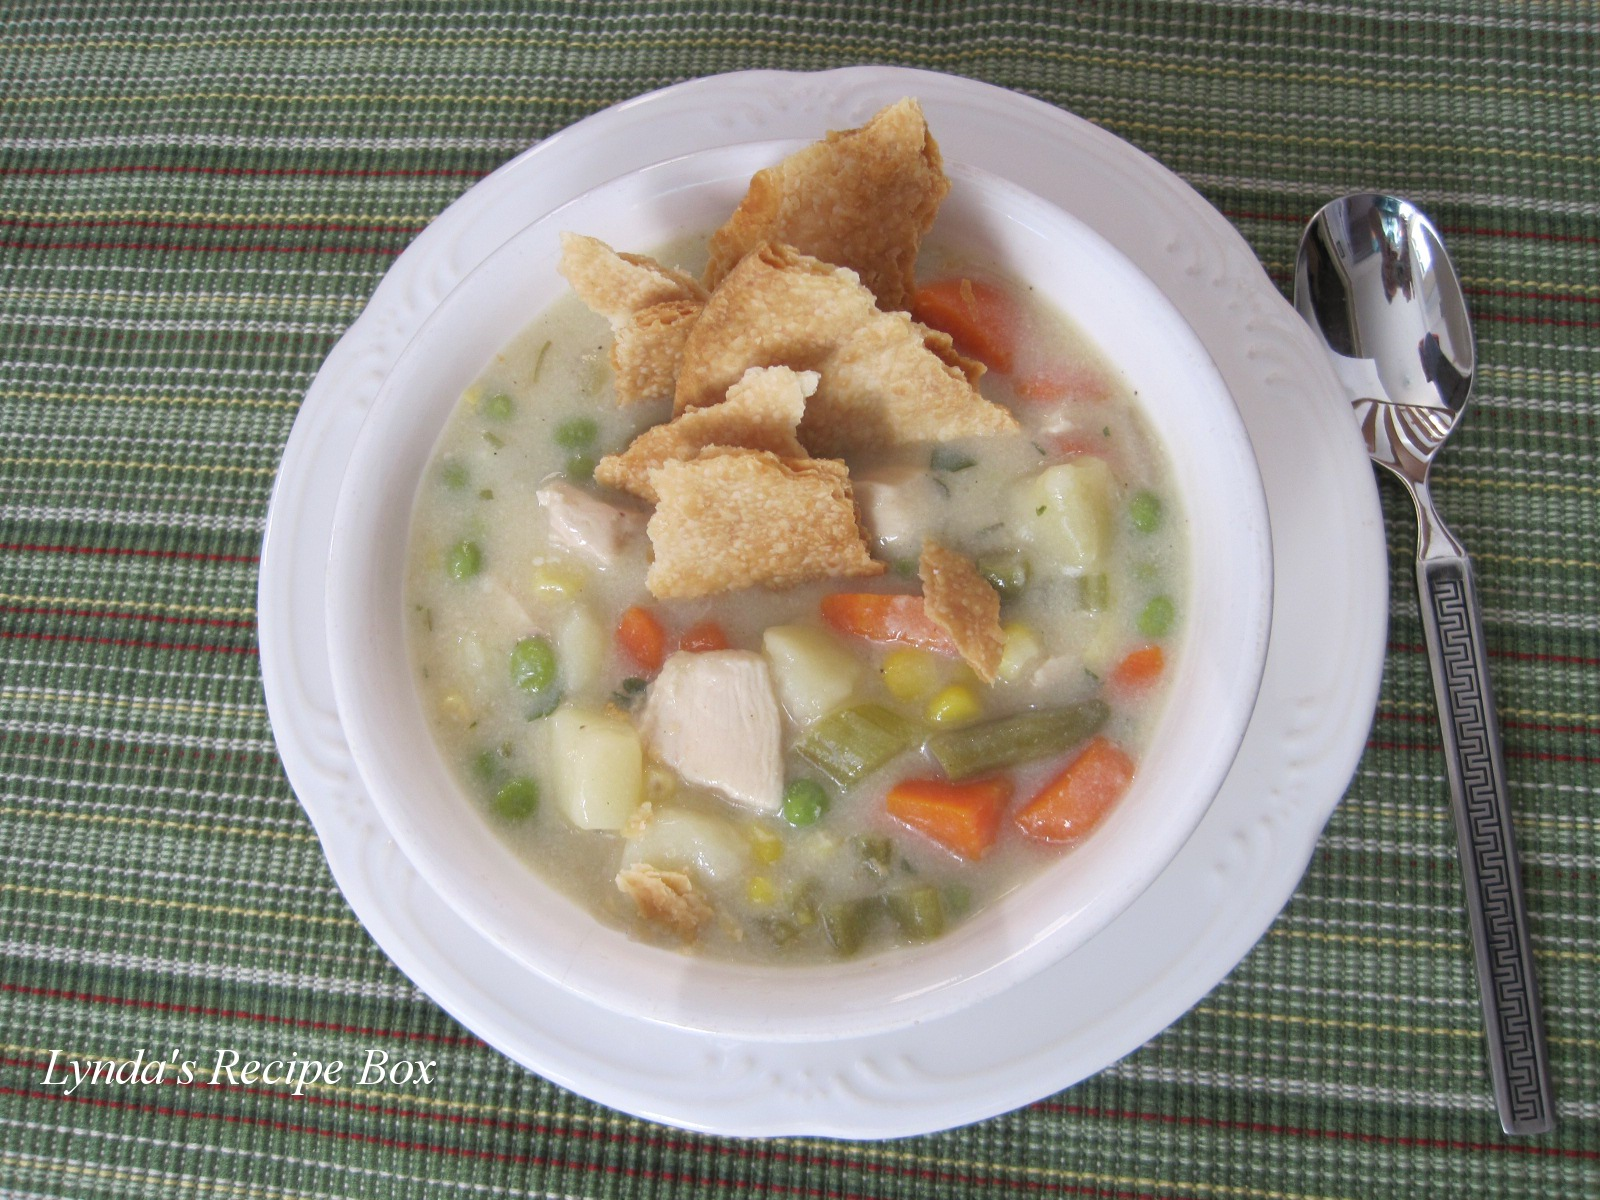 Lyndas recipe box chicken pot pie soup chicken pot pie soup adapted from aaron mccargo food network 6 8 servings approximately i cut out some of the fat from the original recipe forumfinder Gallery